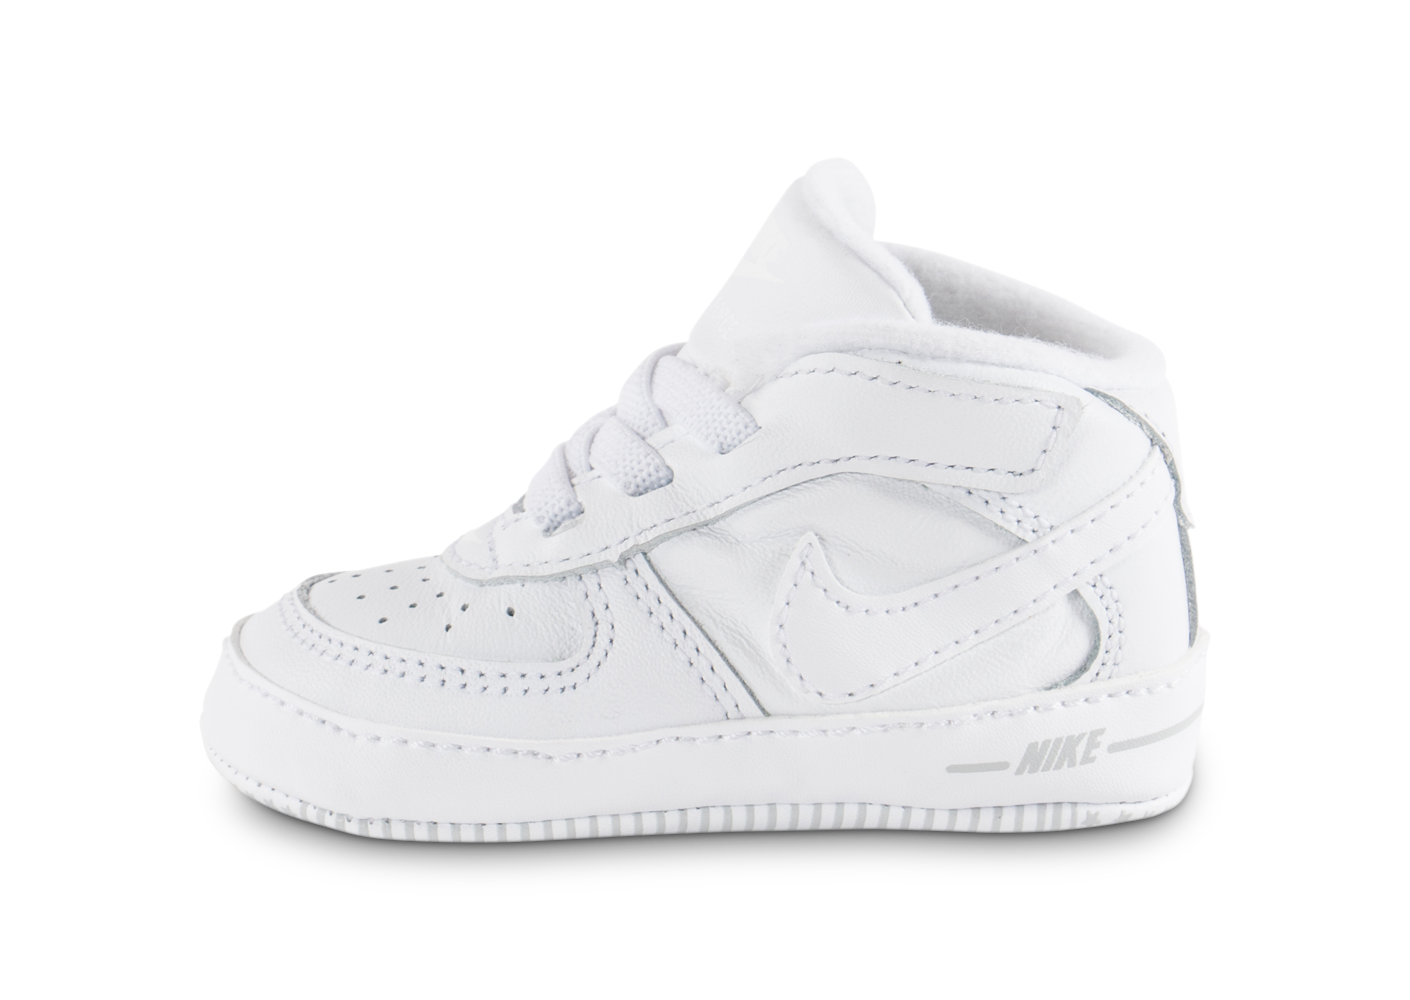 premium selection 41ca1 fcb4a Baskets nike chaussons air force 1 bébé blancs